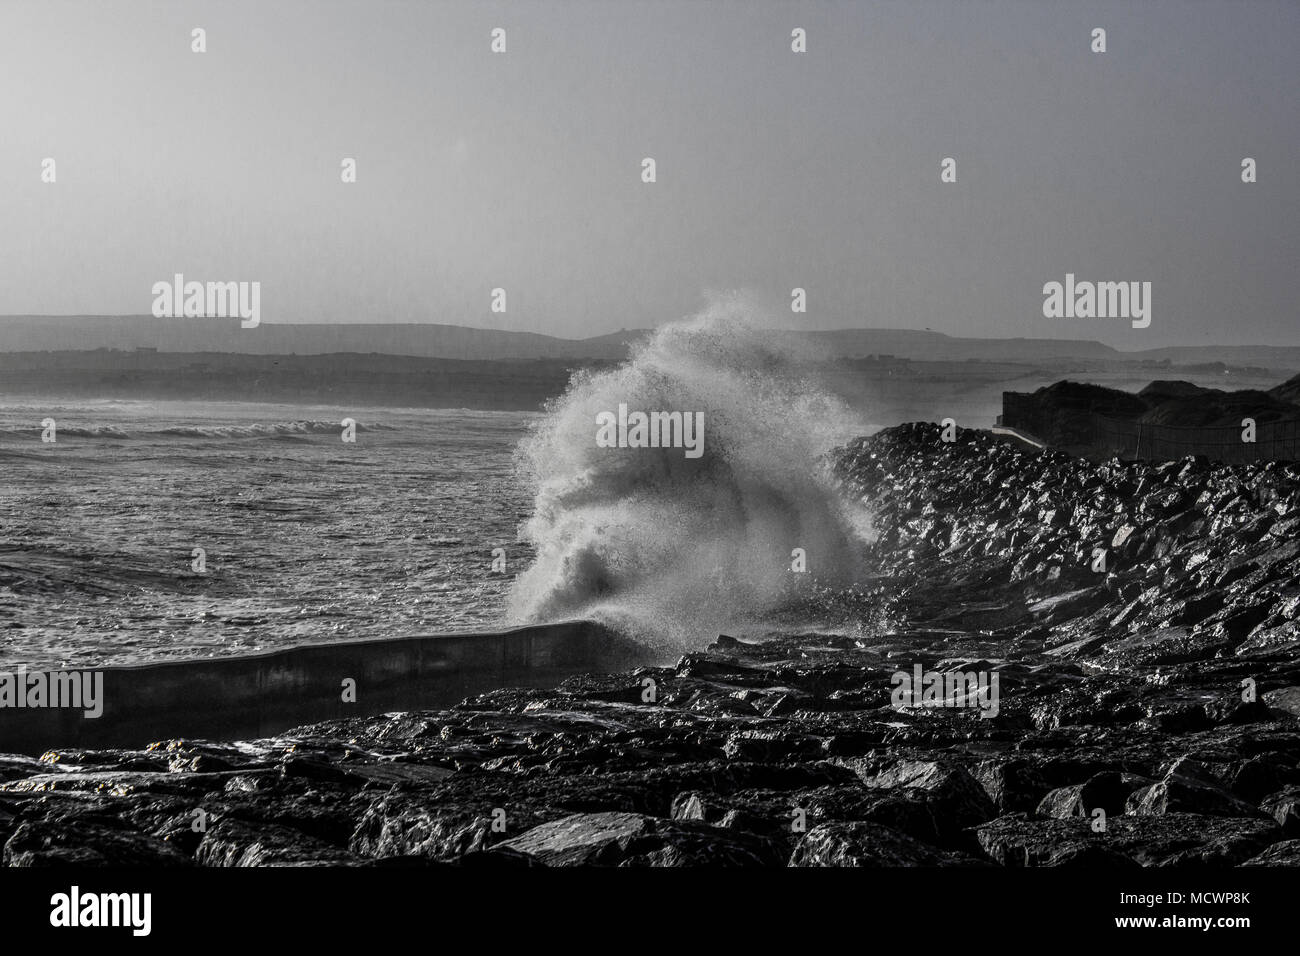 Wave crashing into wall at Lahinch beach during high tide black and white - Stock Image